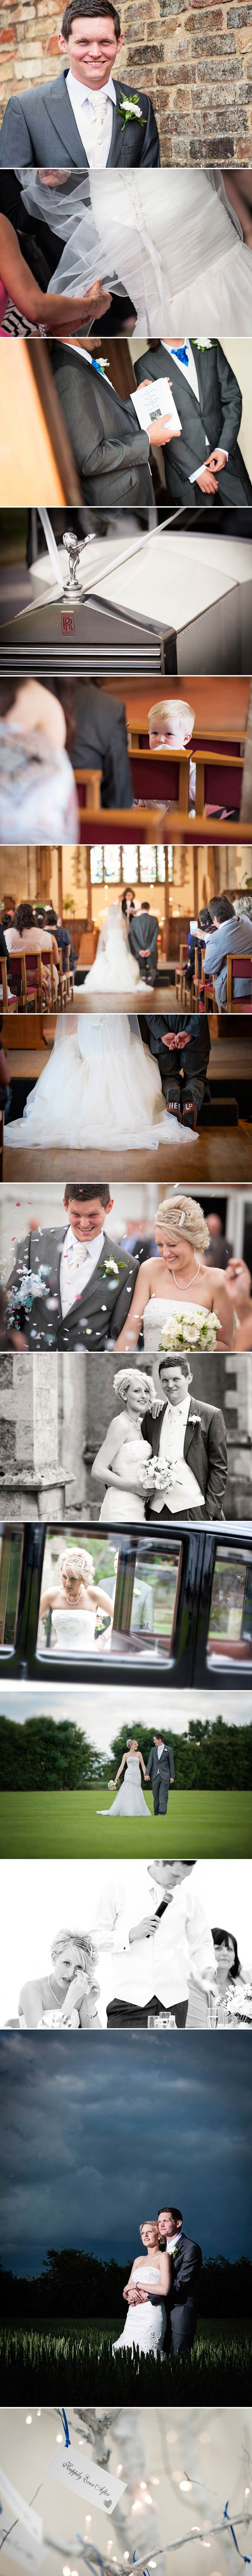 Harlow wedding photography-Contrejour-photography